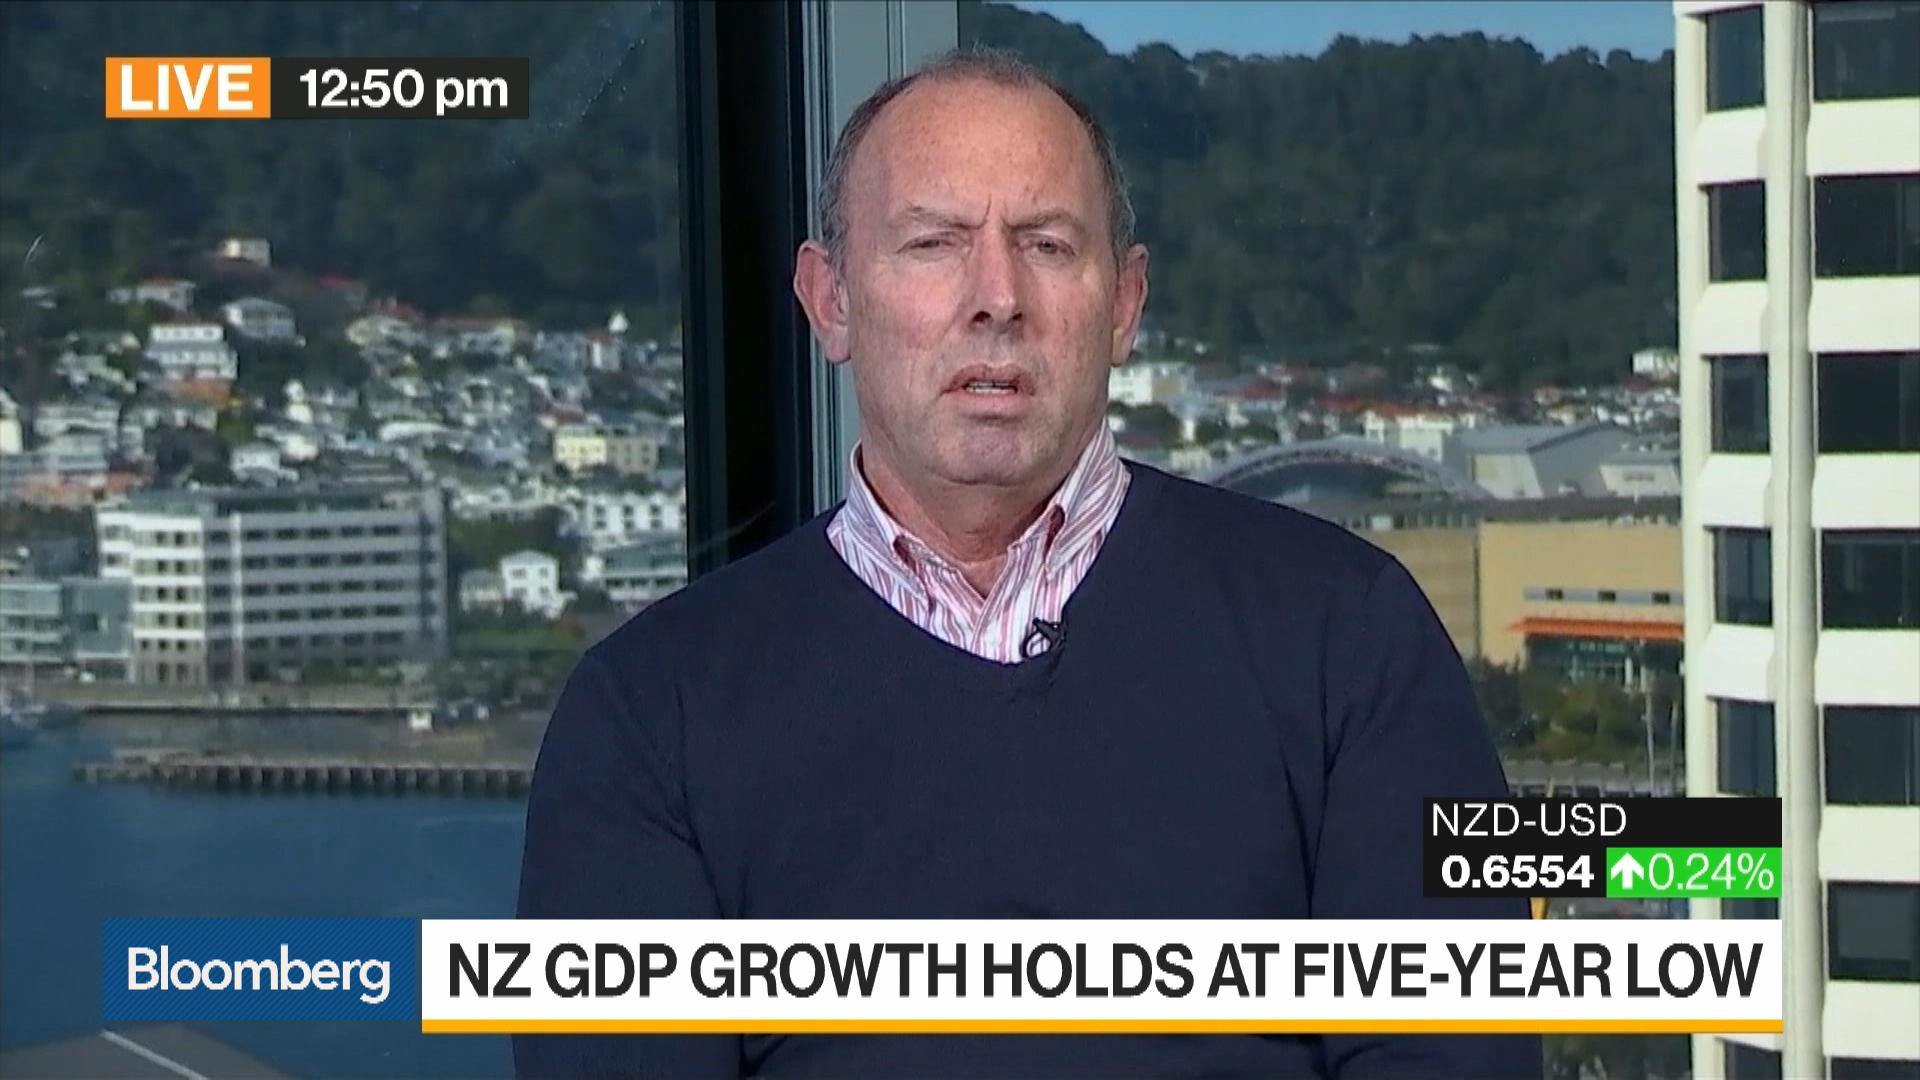 New Zealand's Economic Growth Rate Held at 5-Year Low in 1Q